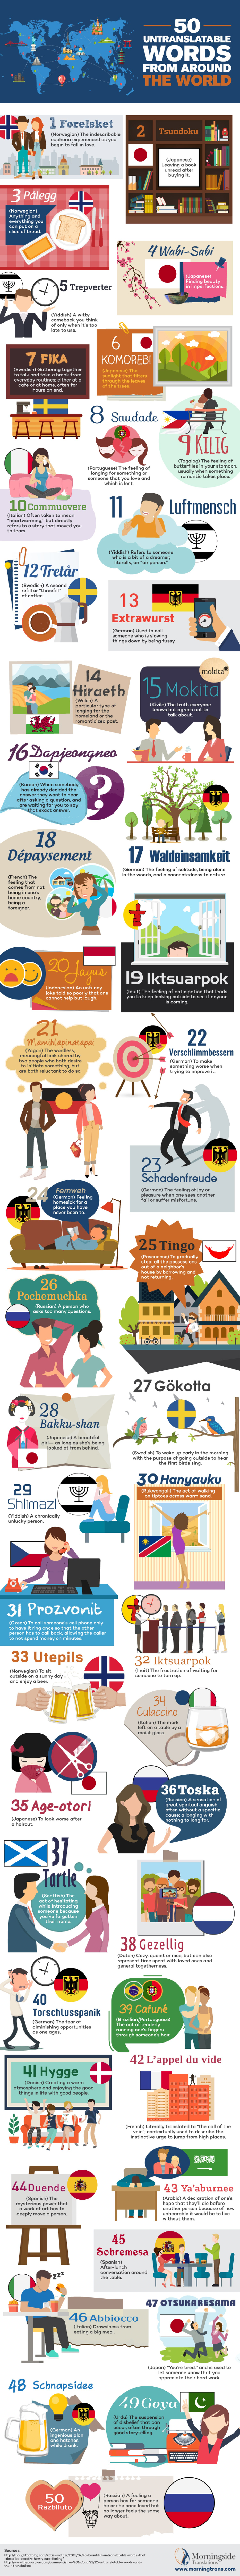 50-untranslatable-words-from-around-the-world_572895c02d271_w1500